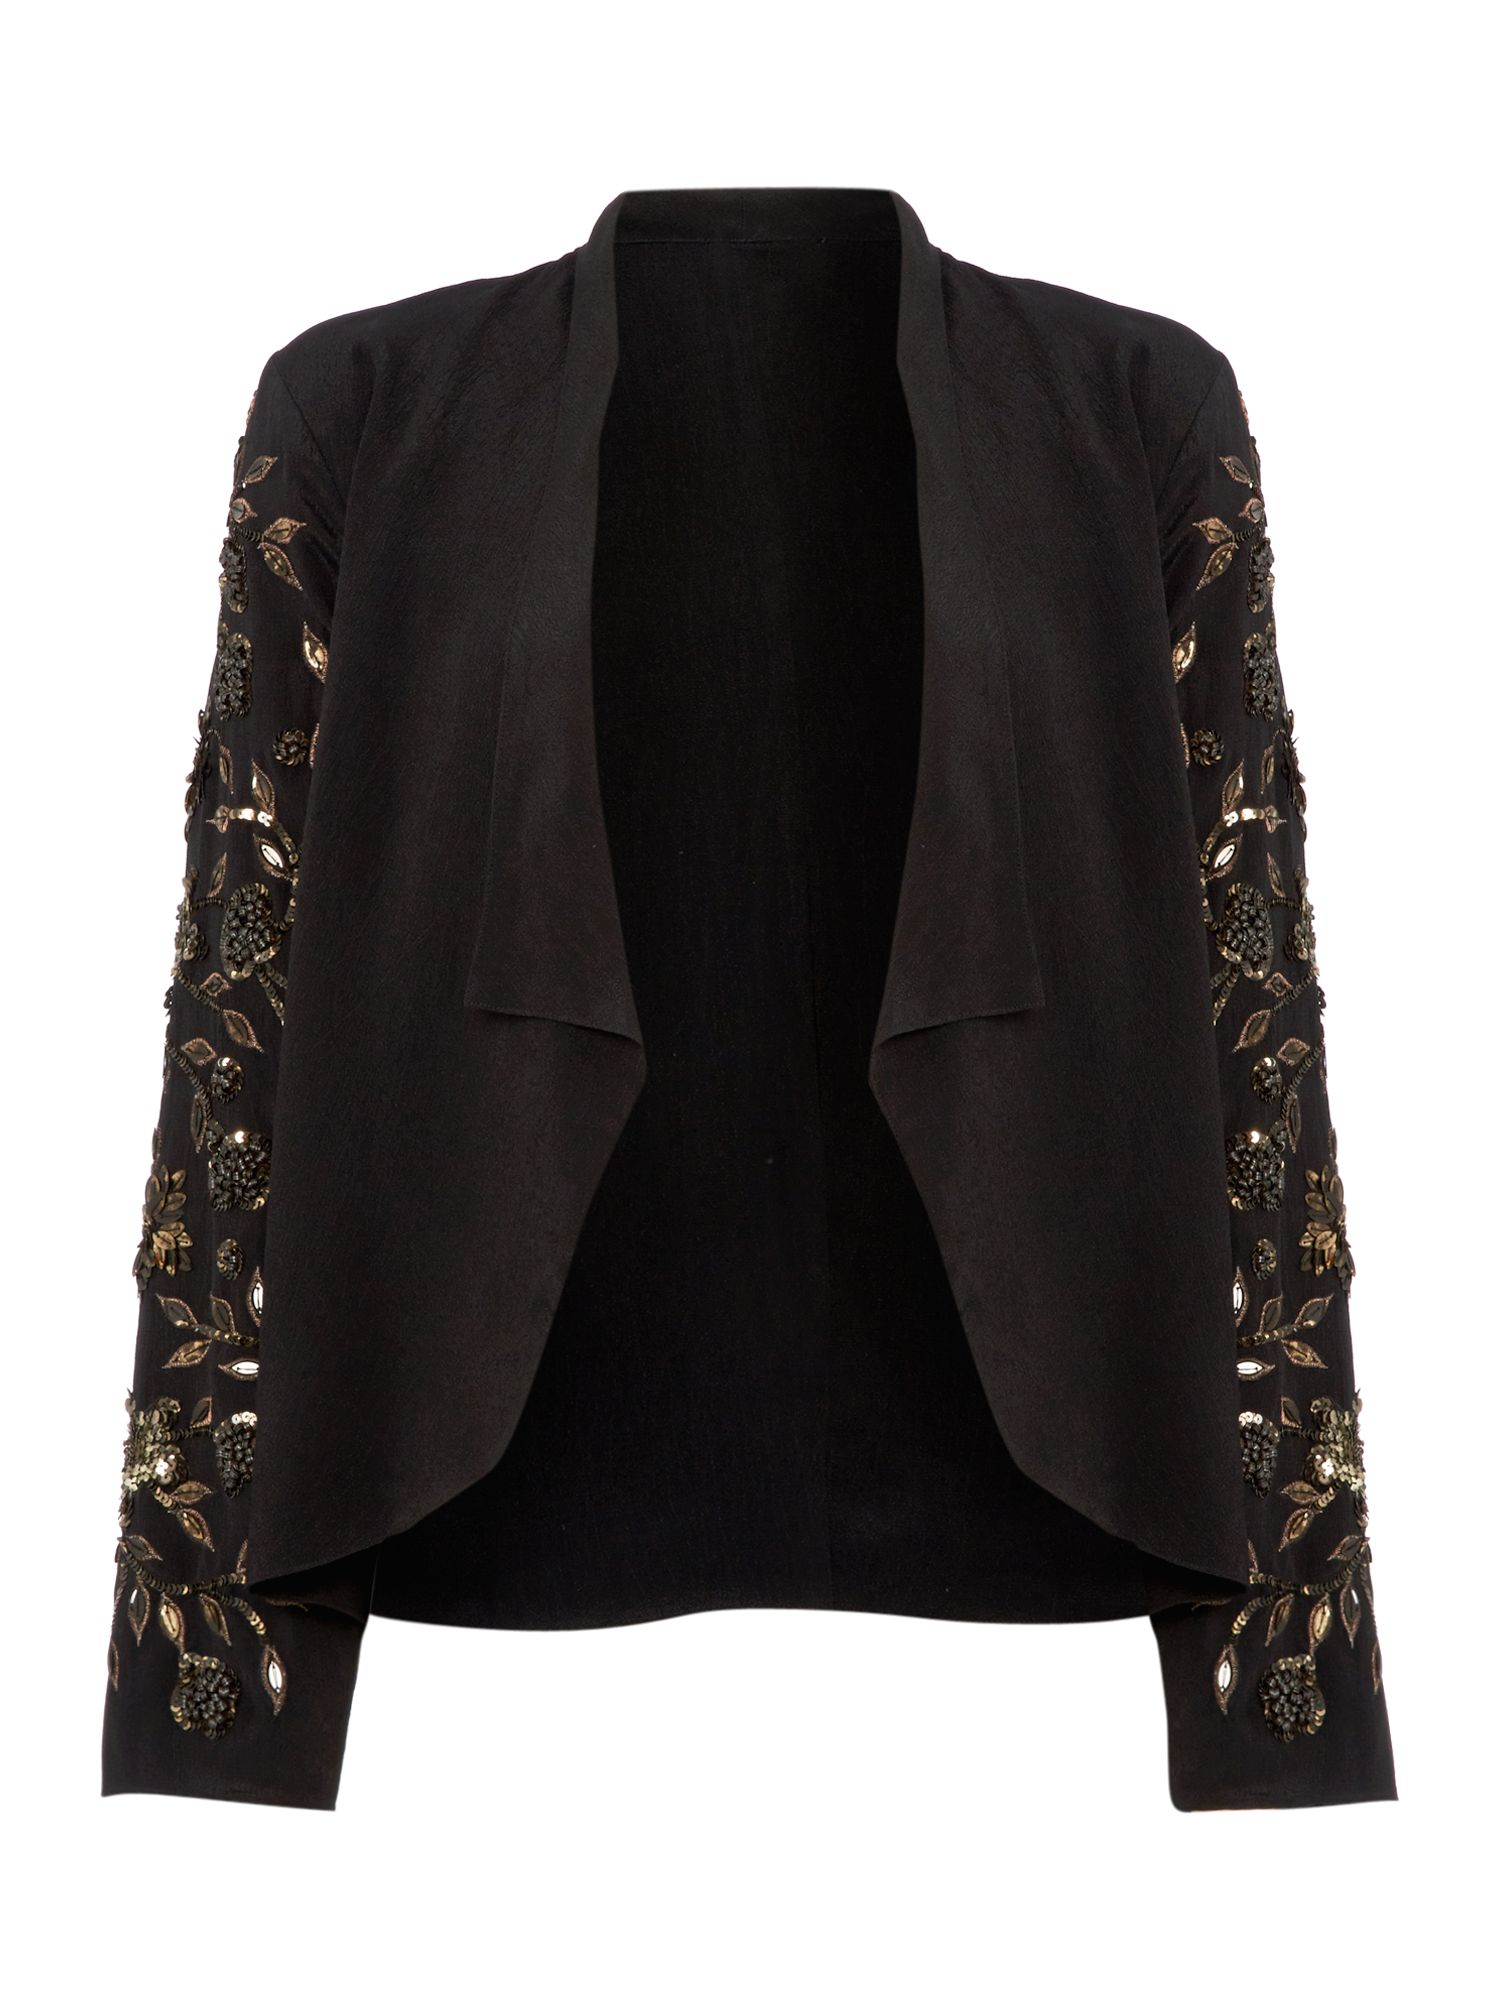 Embellished waterfall jacket